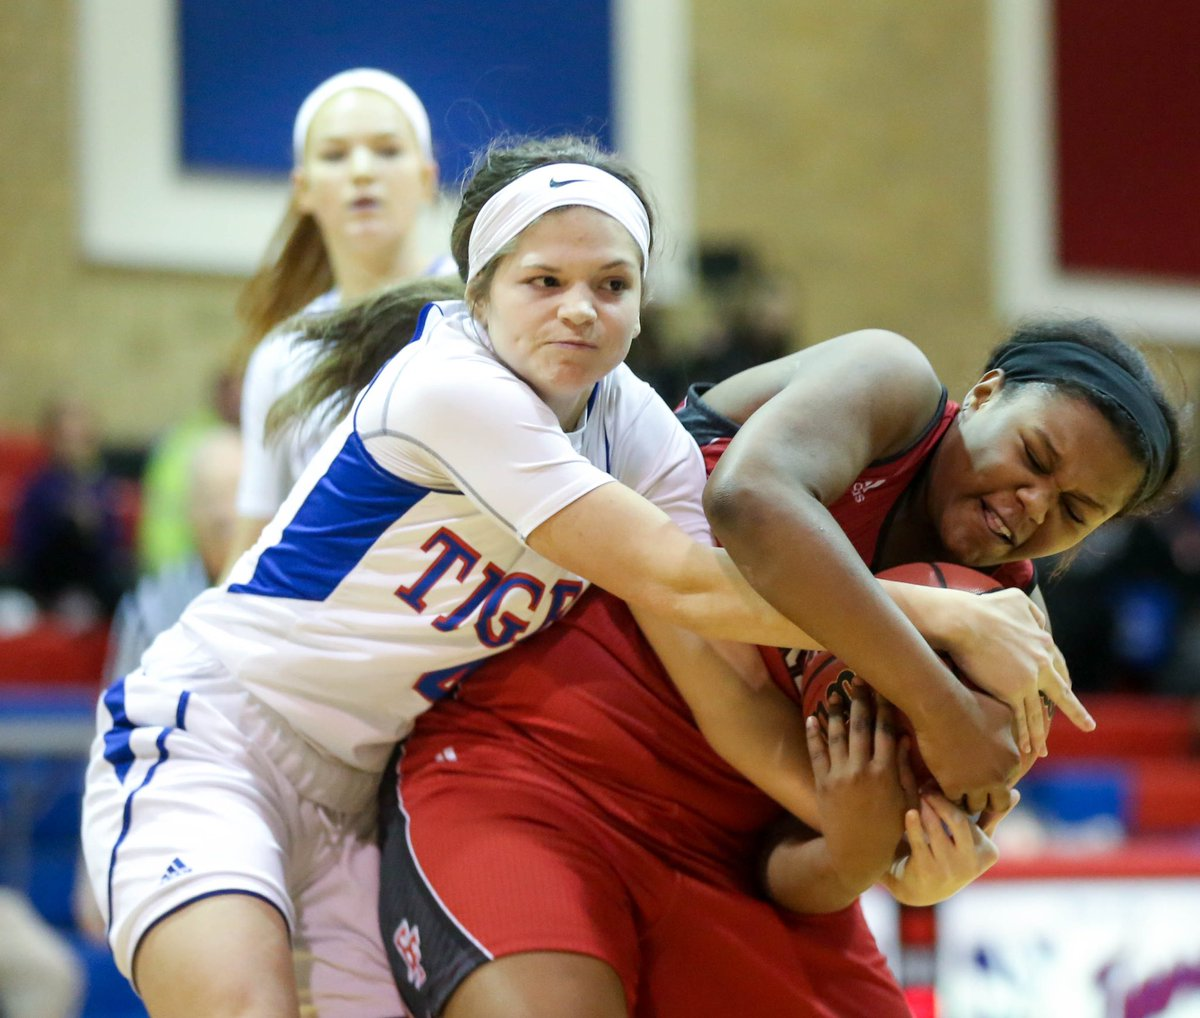 McKeesport's Haley Hertzler and Elizabeth Forward's Bailie Brinson fight for possession of the ball during their game last night at McKeesport Area High School <br>http://pic.twitter.com/bGoFgVFz58